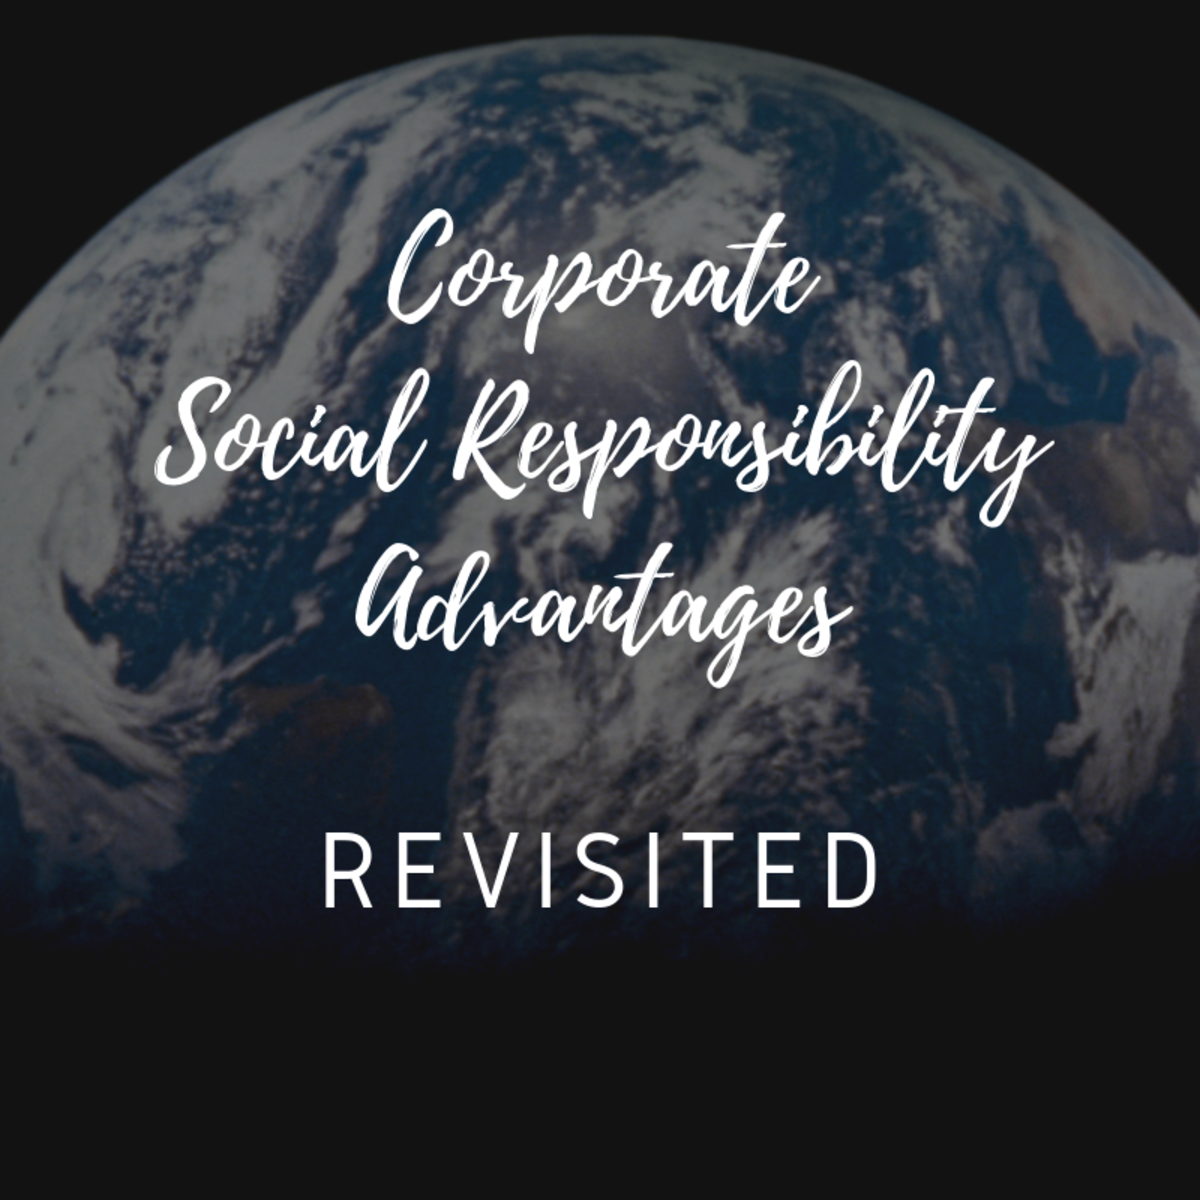 Corporate Social Responsibility Advantages Revisited